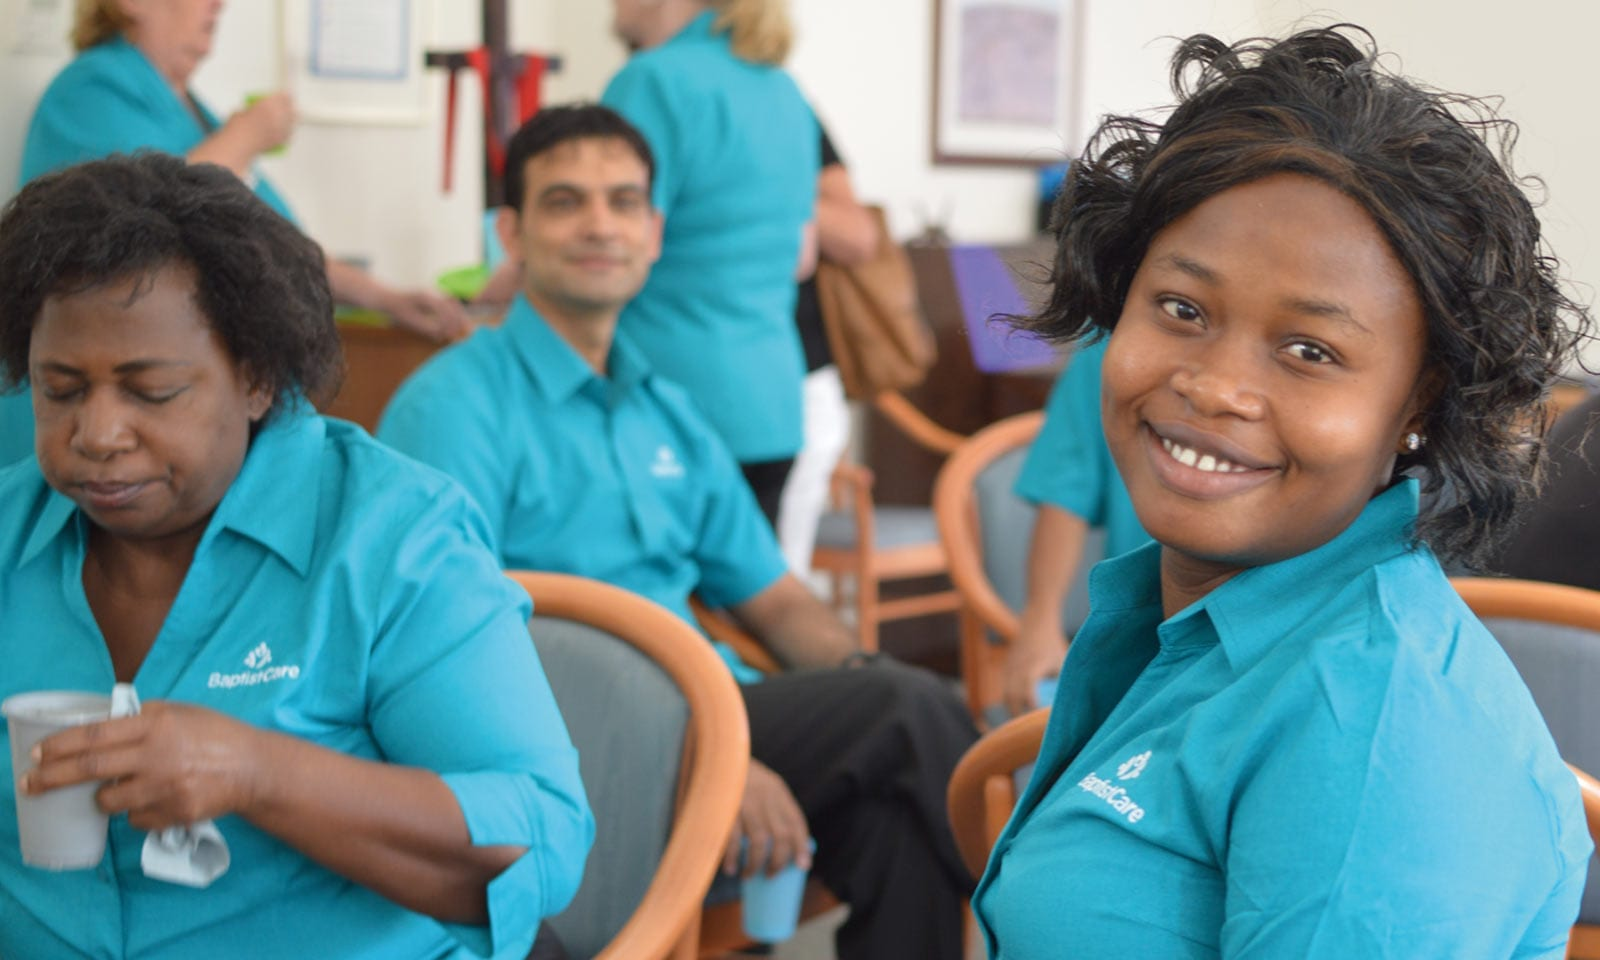 Branded Uniform design Sydney, BaptistCare uniforms and P2P branding for over 5000 employees.